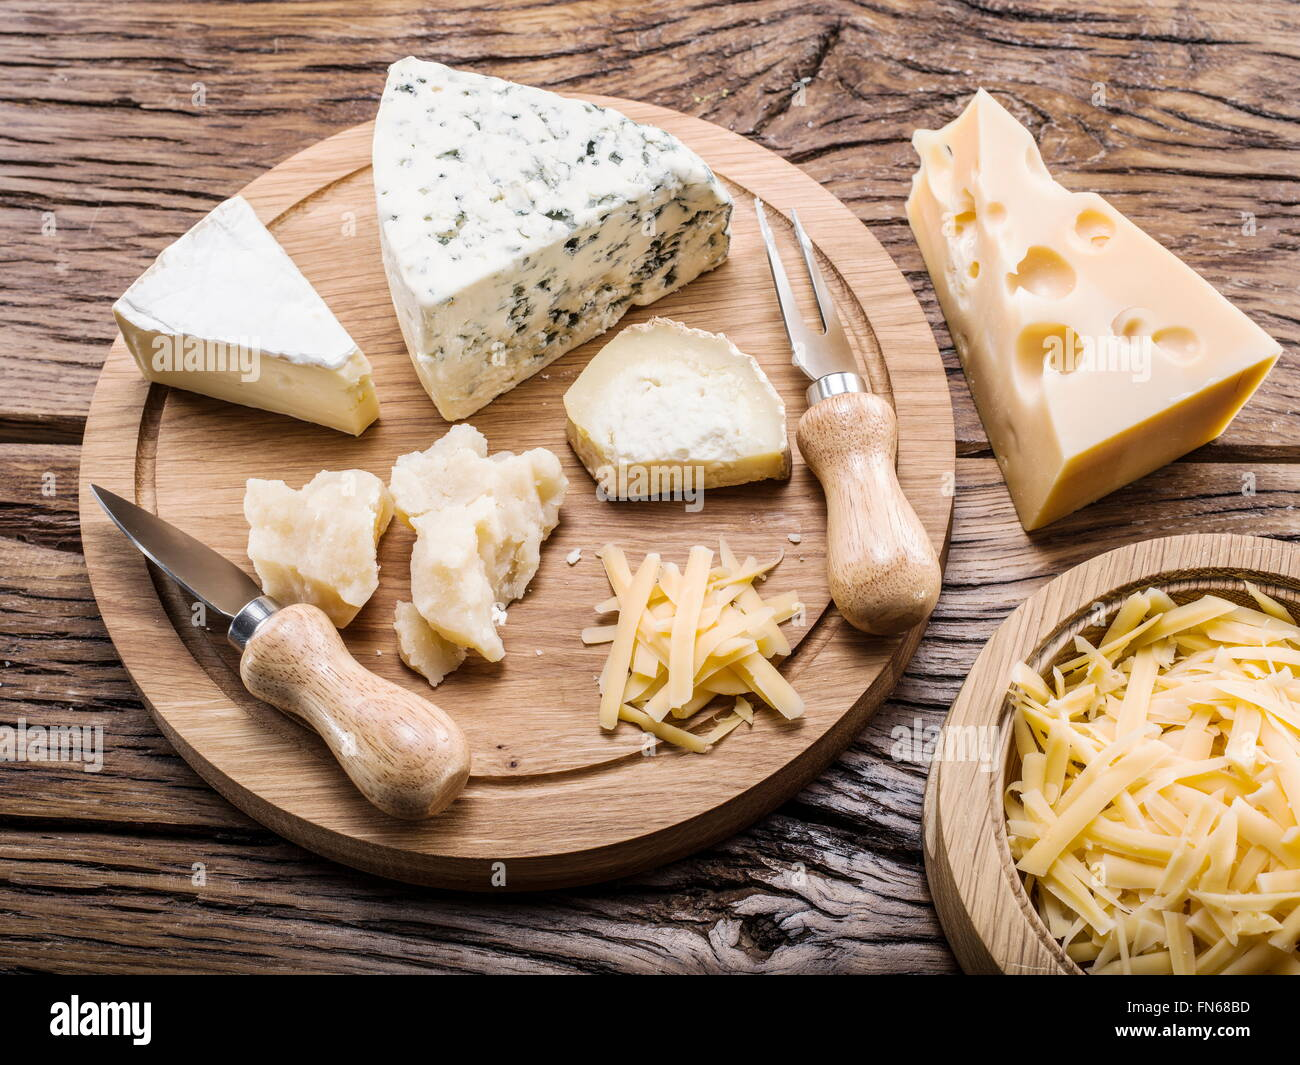 Variety of cheeses on a wooden board. - Stock Image